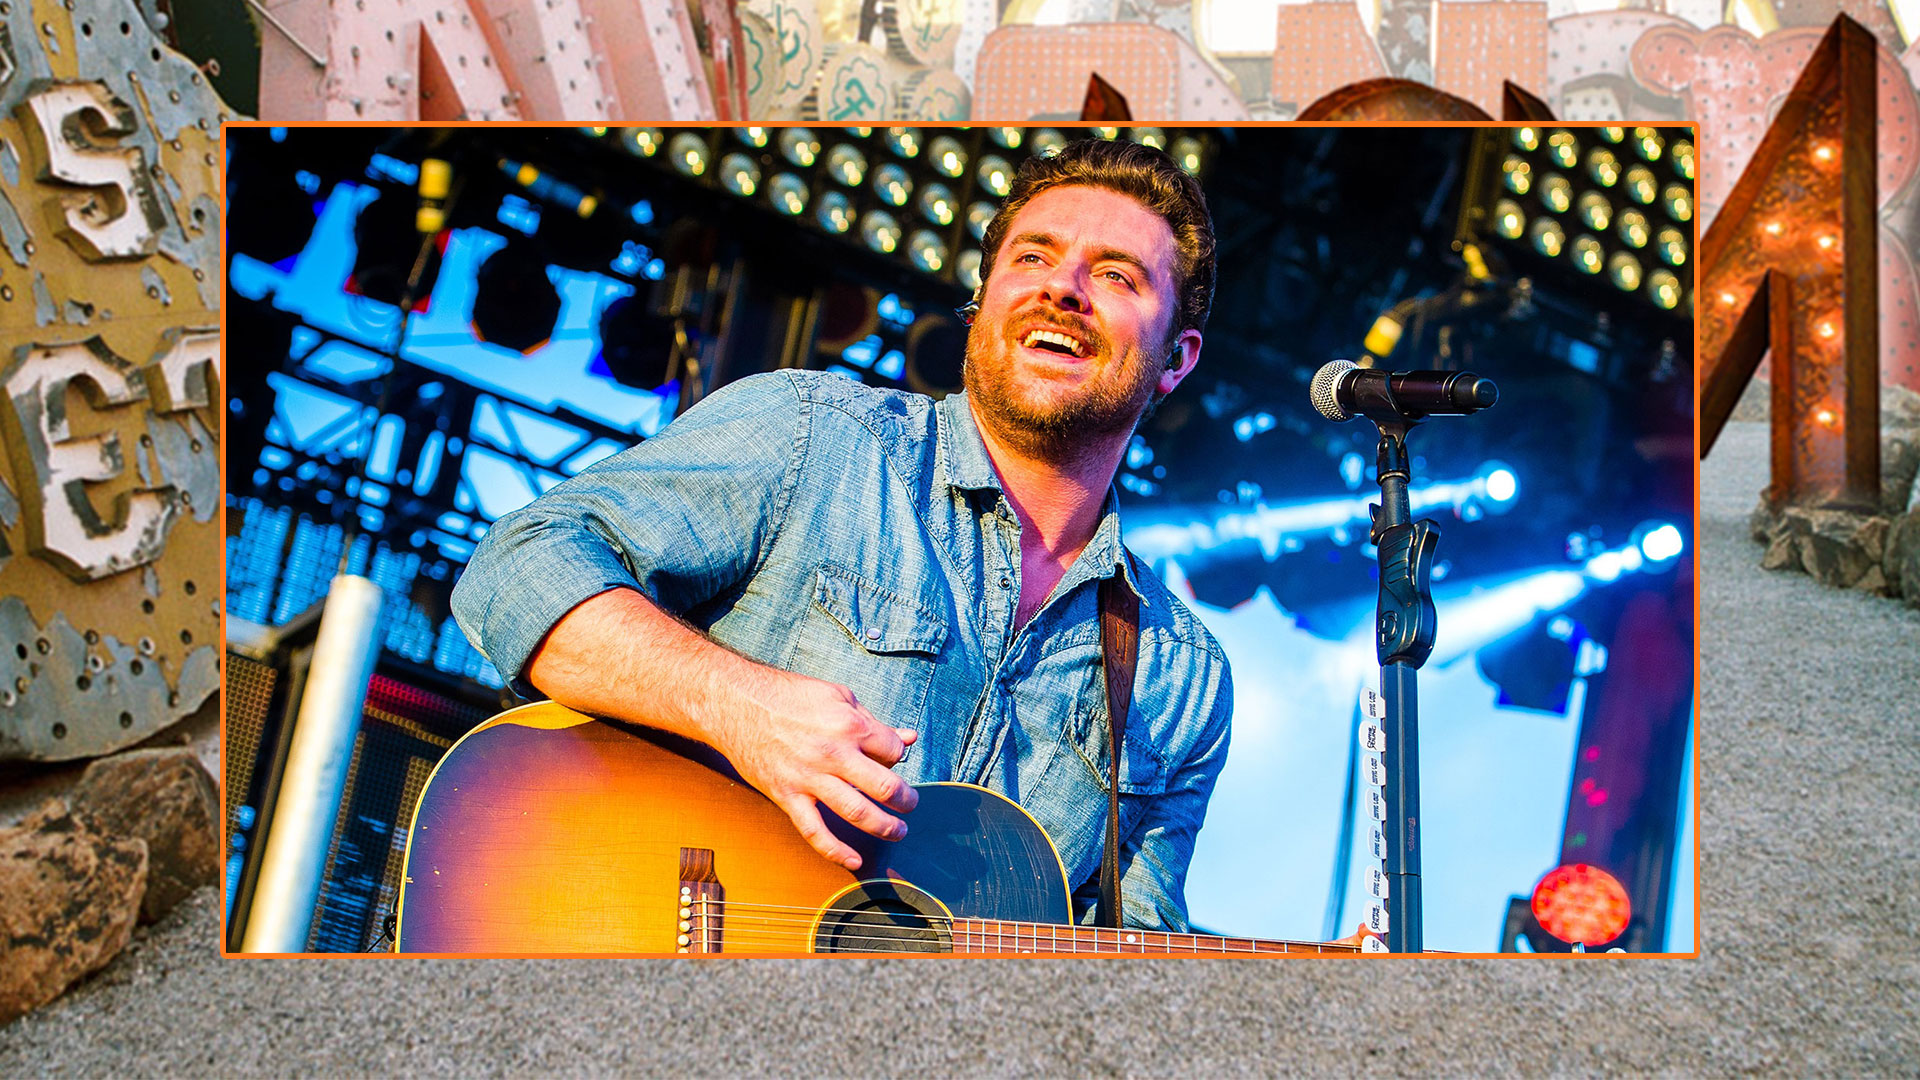 Chris Young is exactly the bearded man we want him to be.